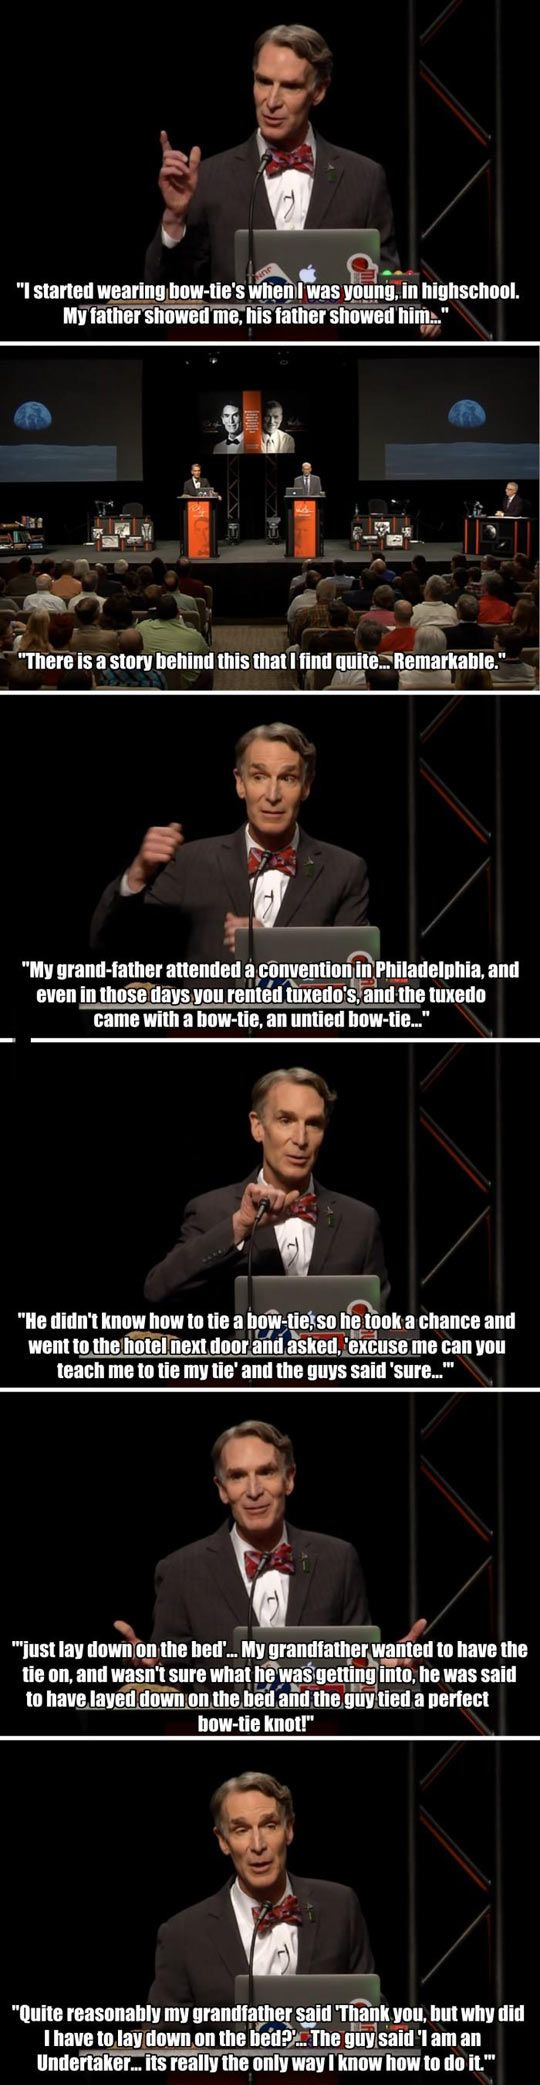 The Story Behind Bill Nye's Bow Tie